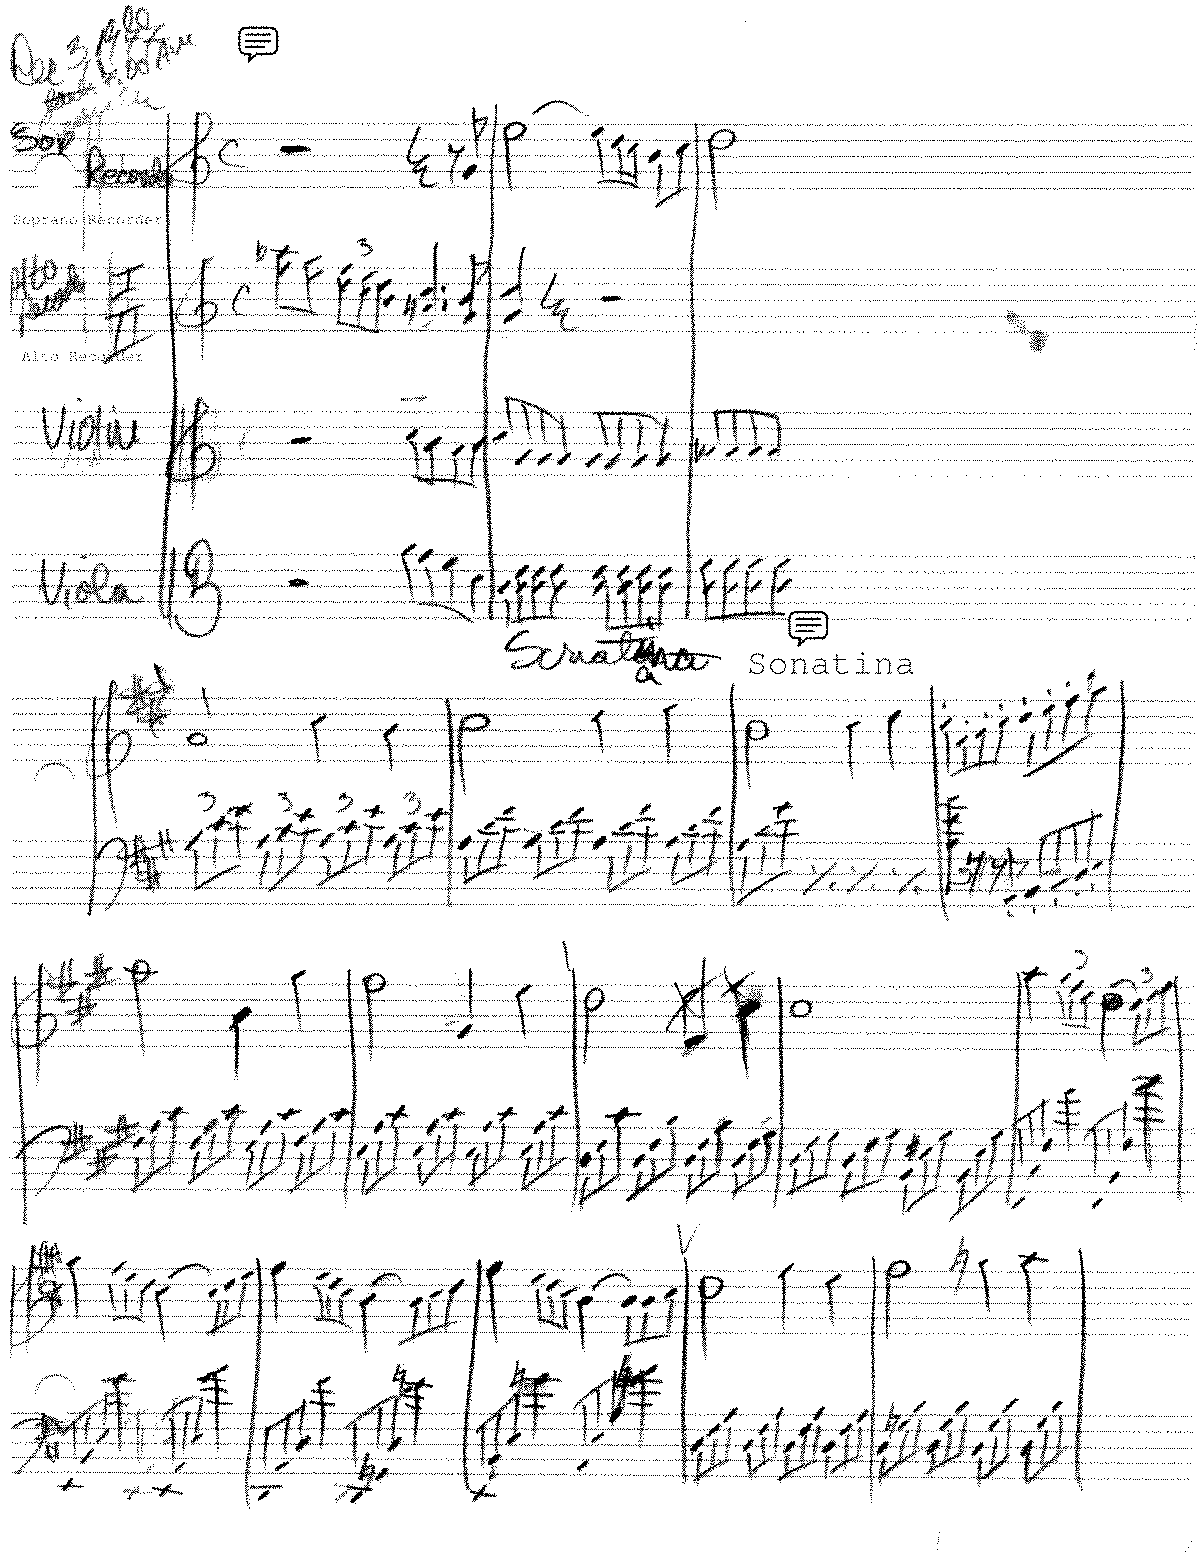 PMLP429976-manuscript-piano-sonatina-A-major-simpson-imslp-010613.pdf